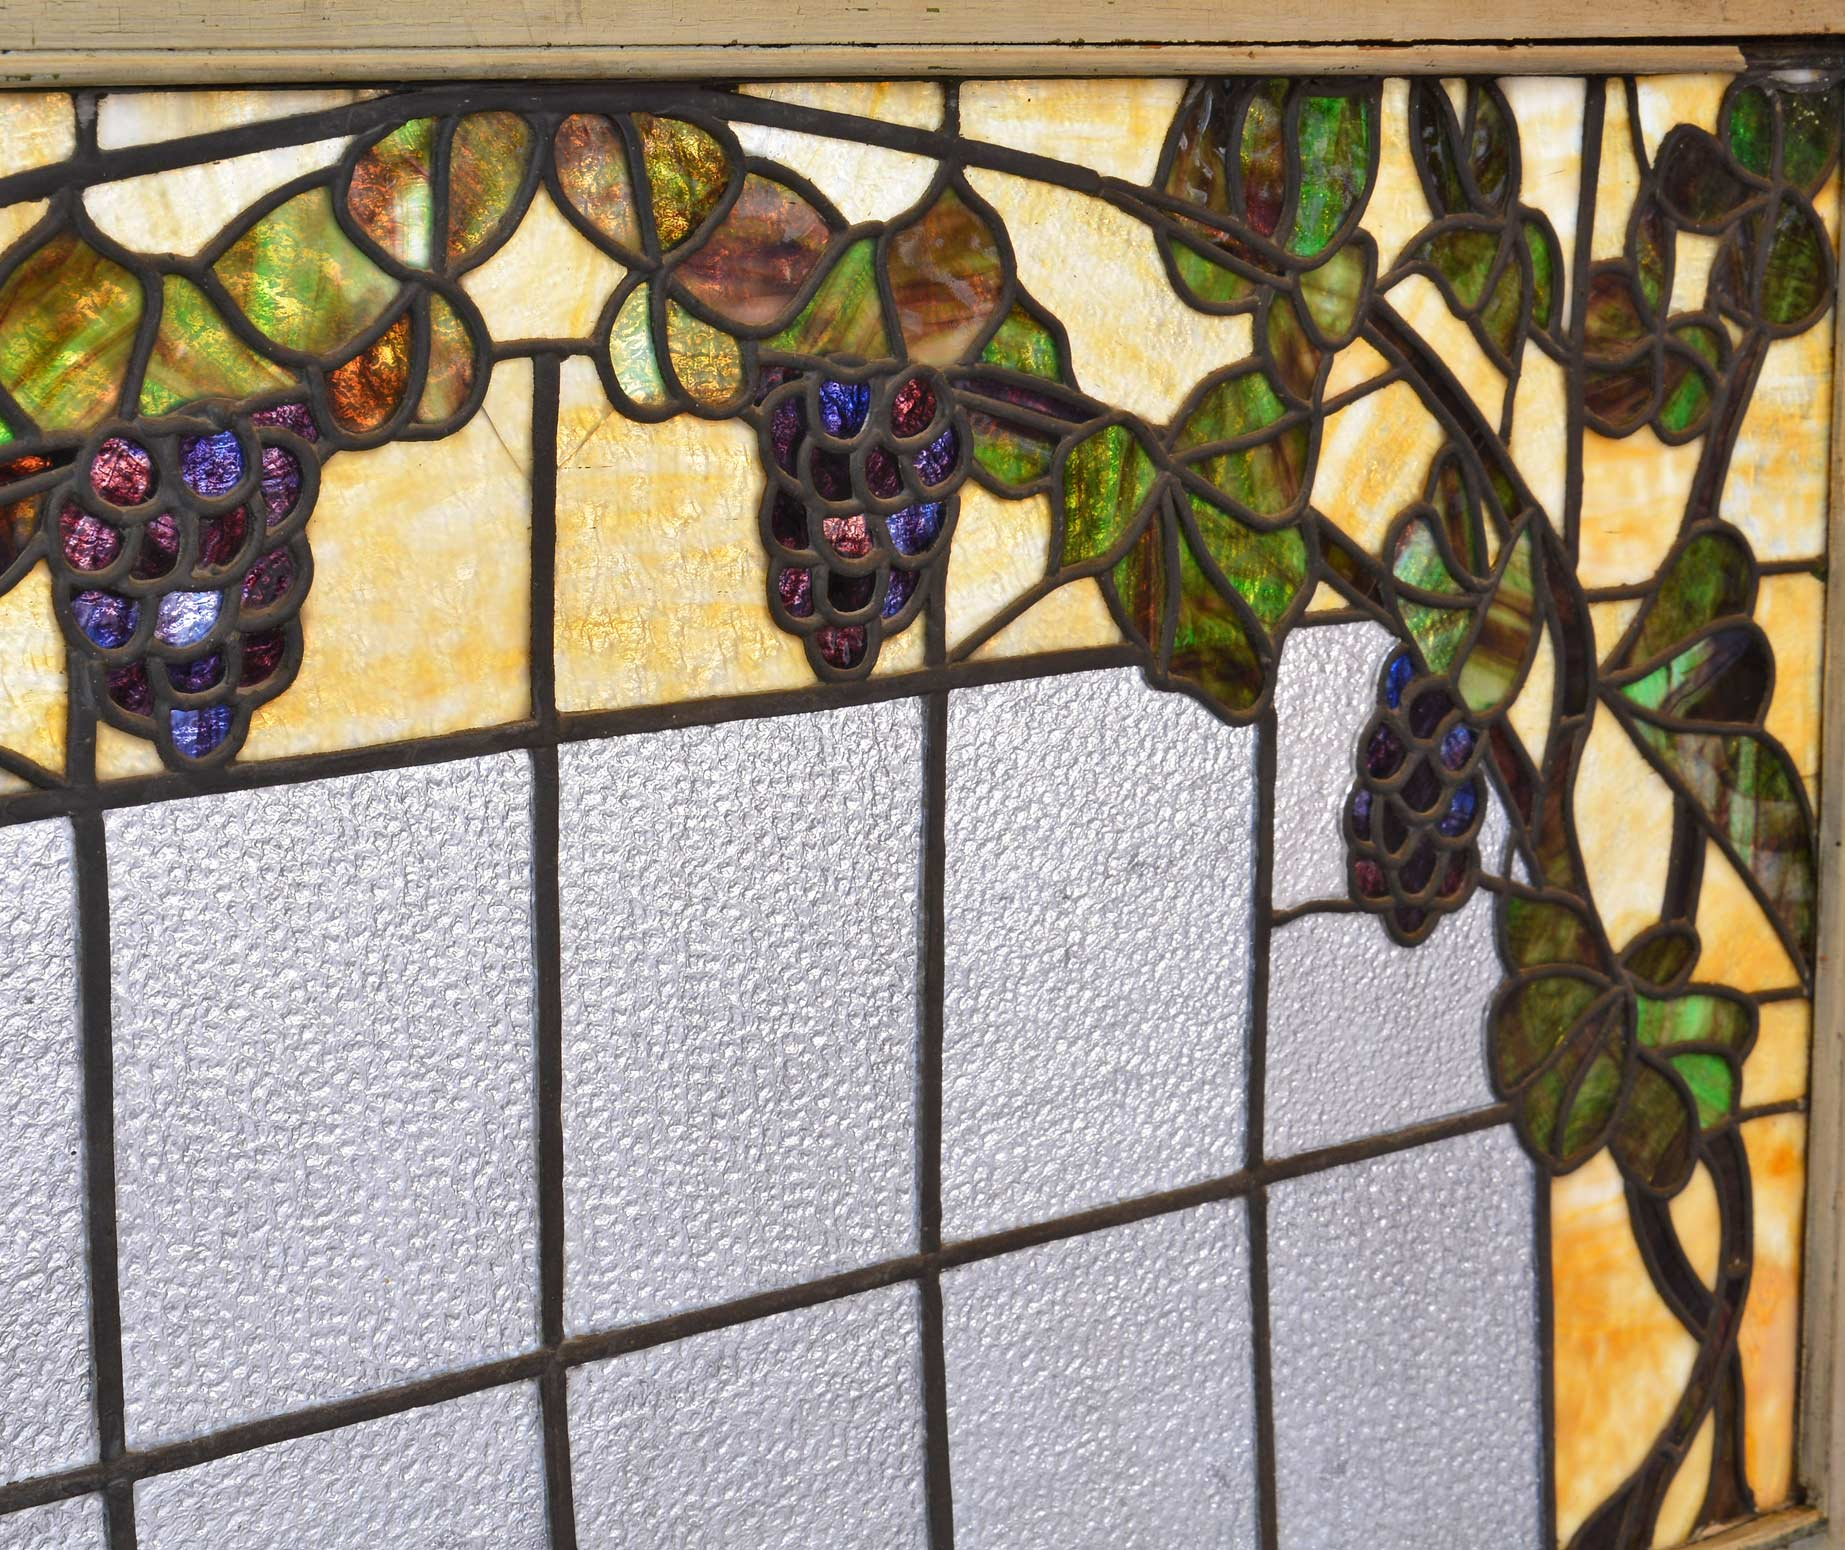 46074-textured-and-stained-glass-window-with-grapes-detail1.jpg